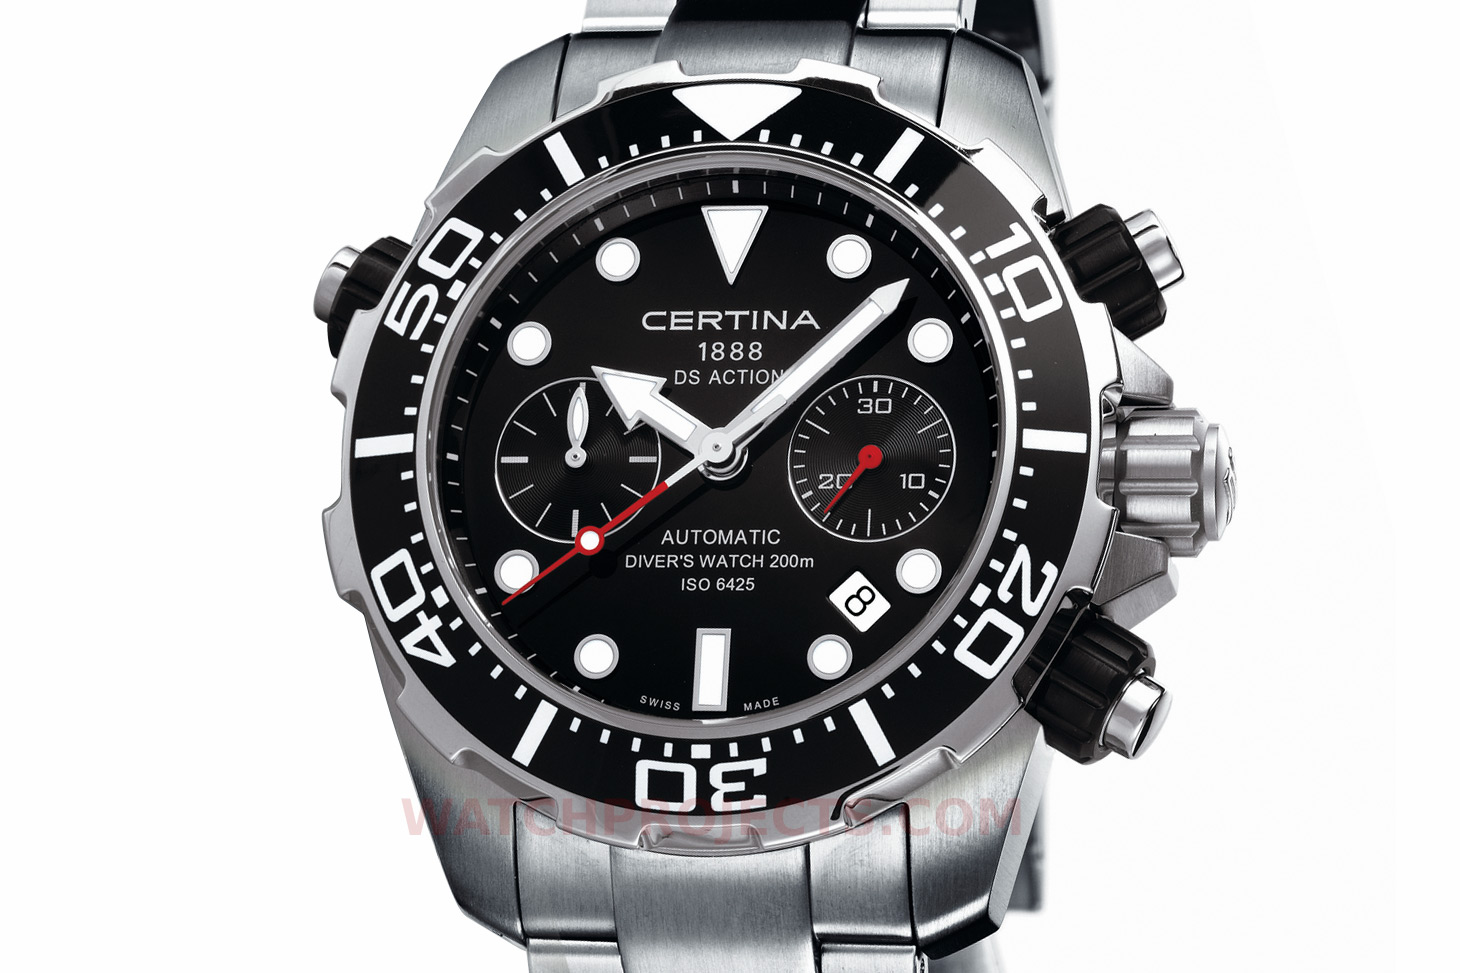 48d2ebd6c CERTINA DS Action Diver Chronograph | independent watch projects